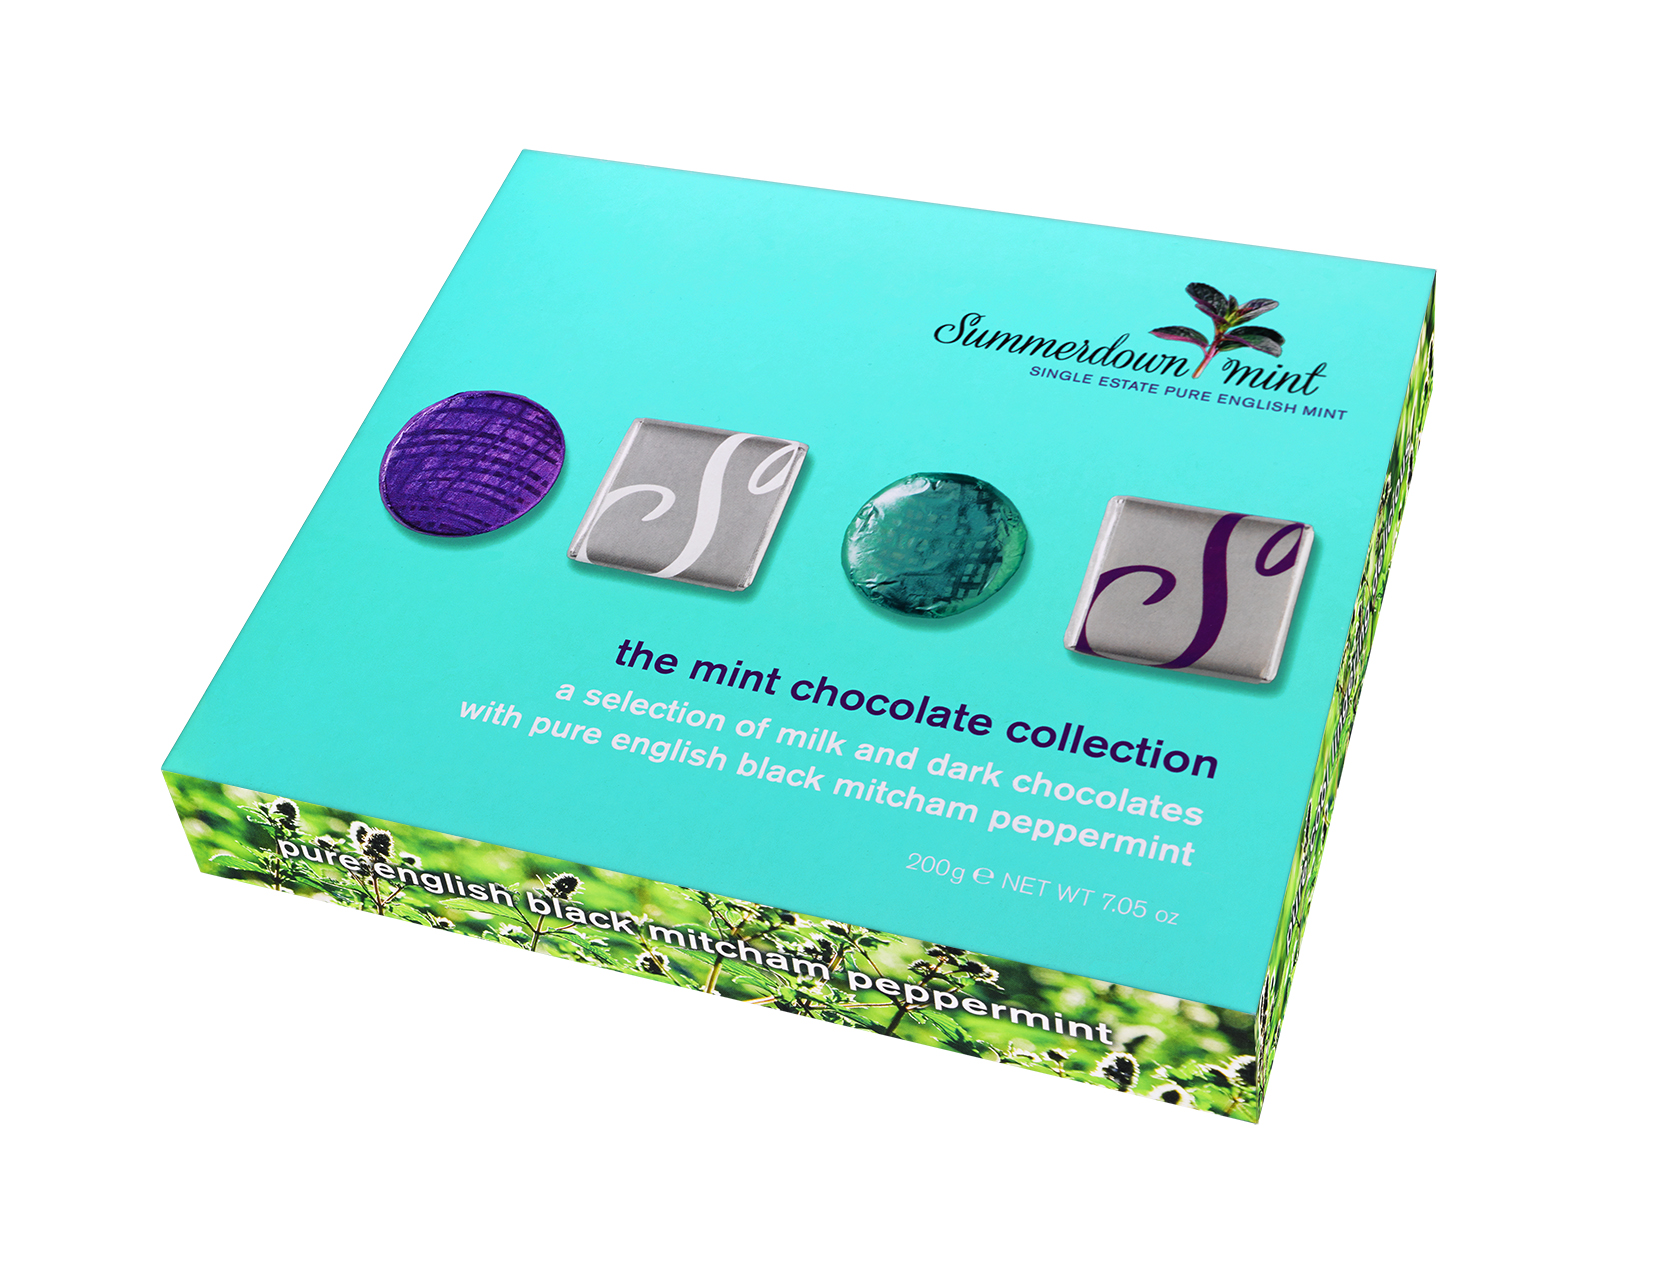 Summerdown Mint Chocolate Ultimate Mint Collection